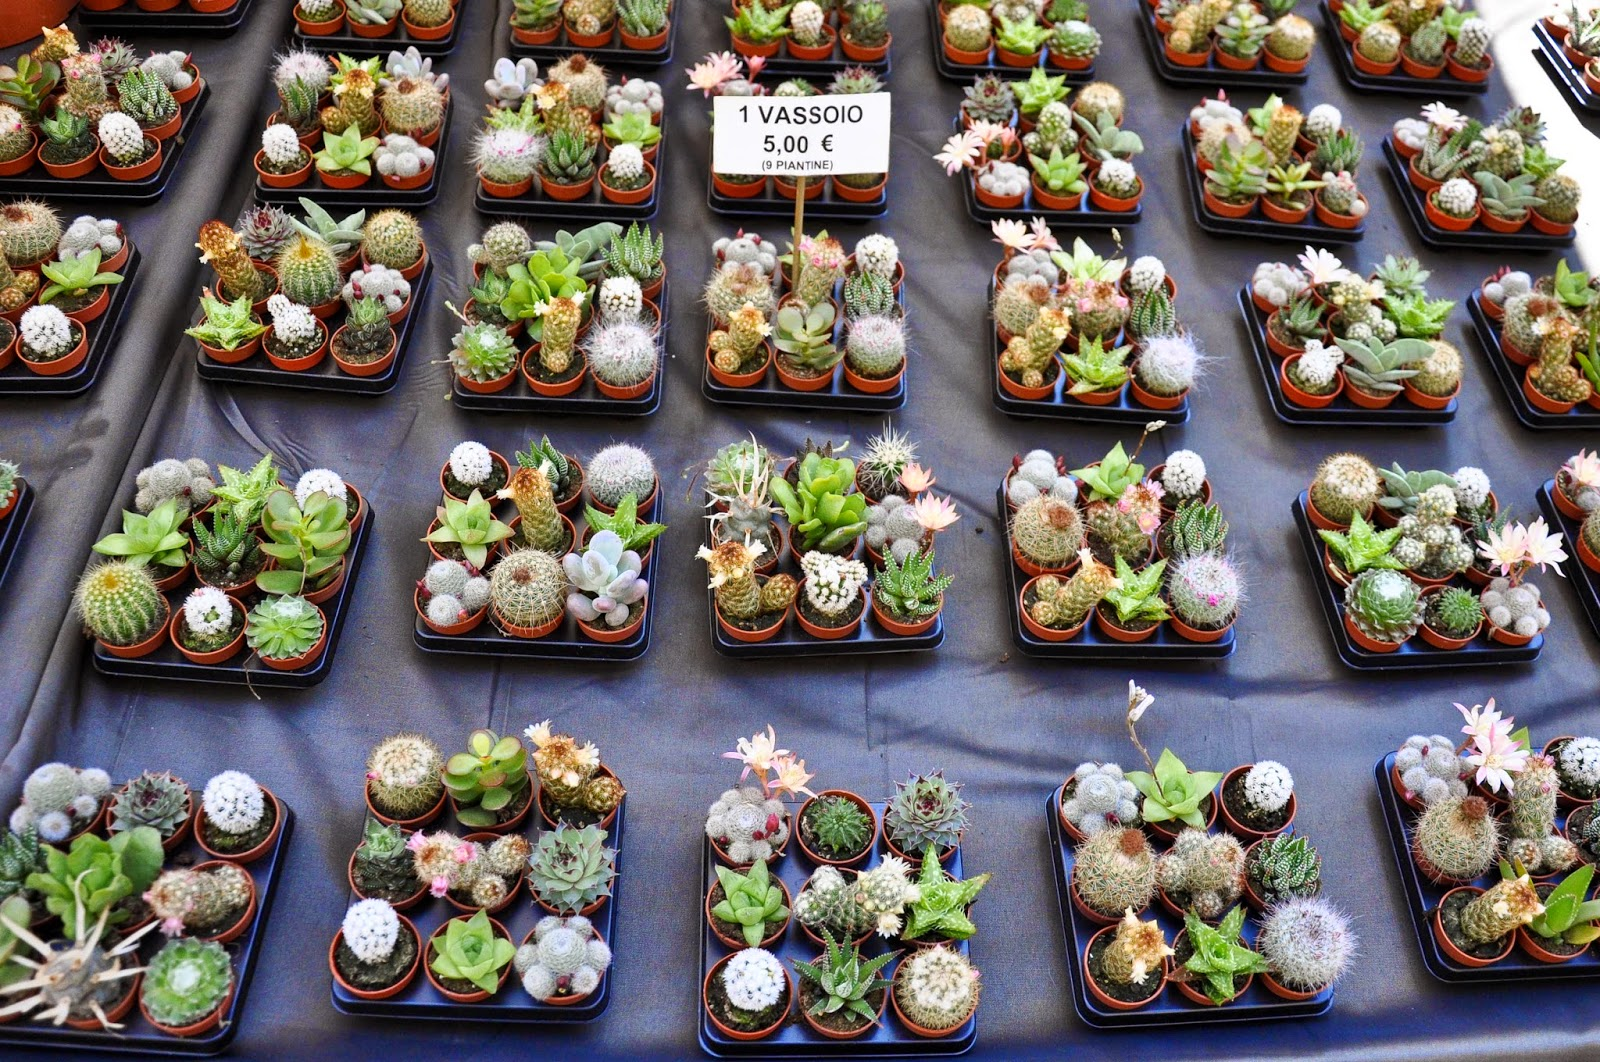 Mini cacti, 7th Edition of 'Fiori, colori, e...' - Floriculture market show, Vicenza, Italy